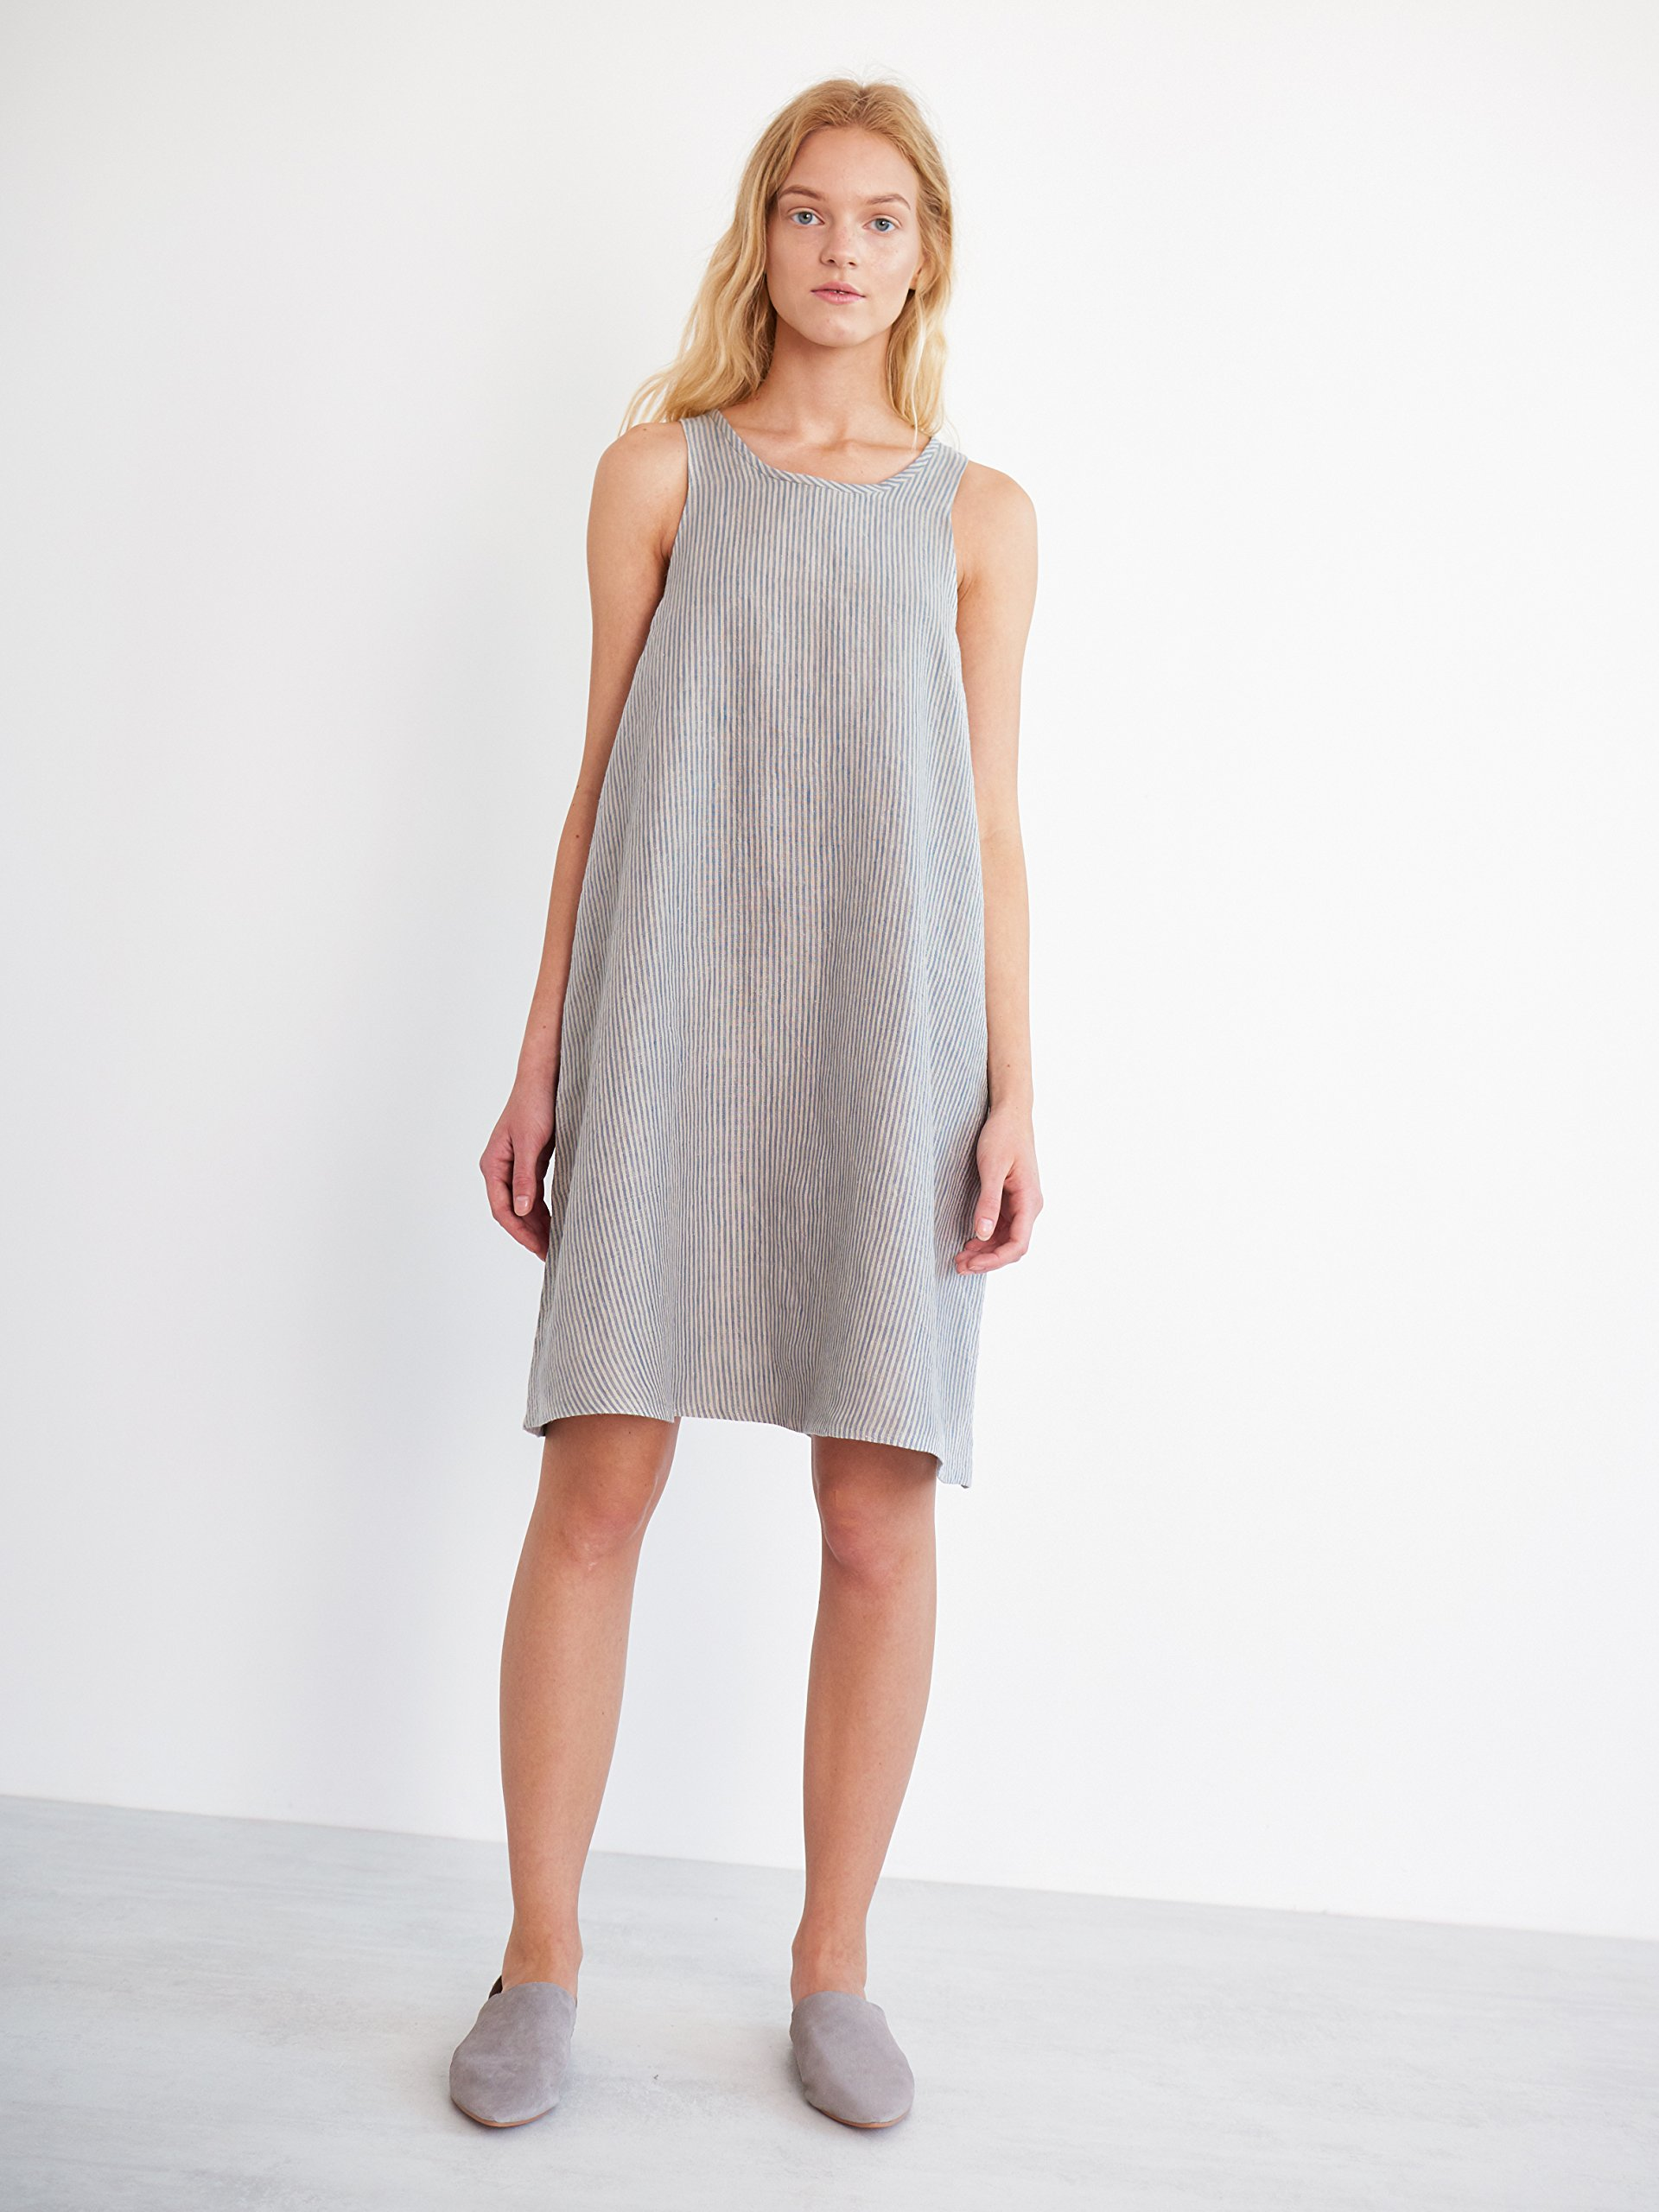 LILY Sleeveless Linen Shift Dress in Stripe Summer Midi Knee Length